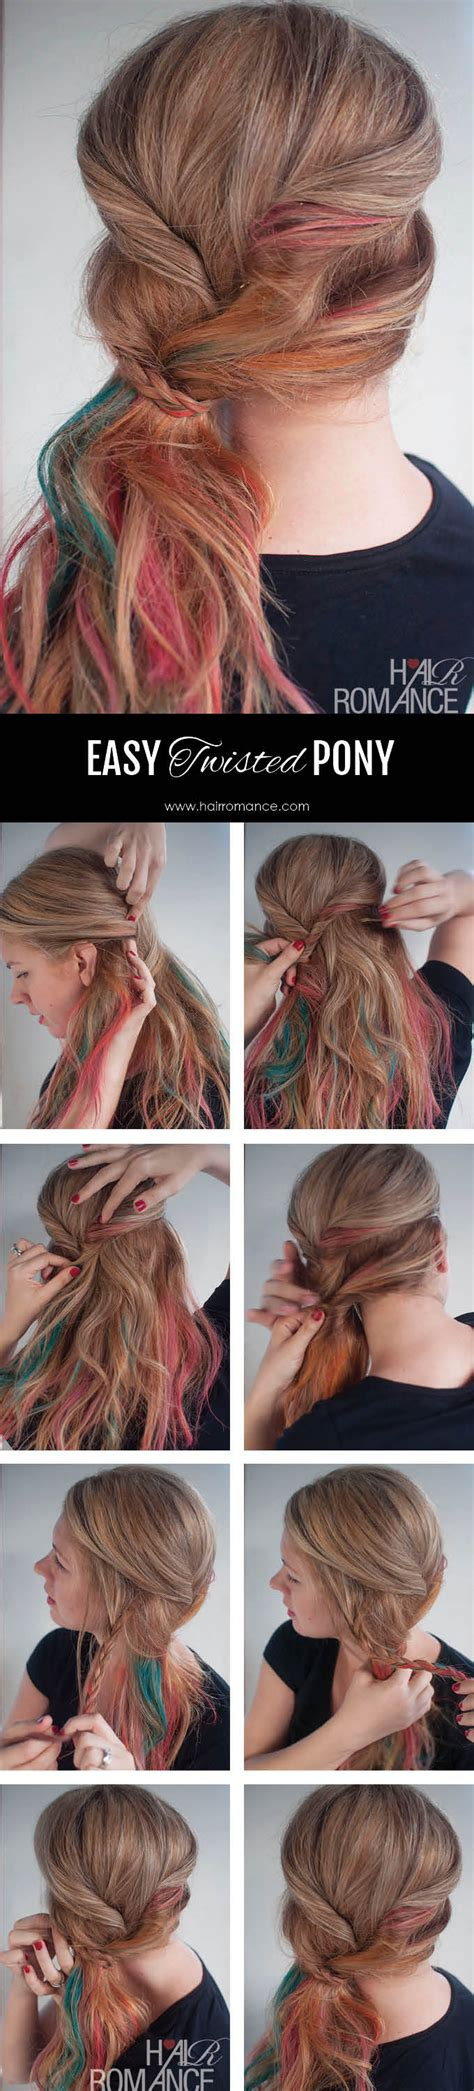 how to tie a twisted pony tail step by step easy twisted ponytail hairstyle tutorial no hair ties